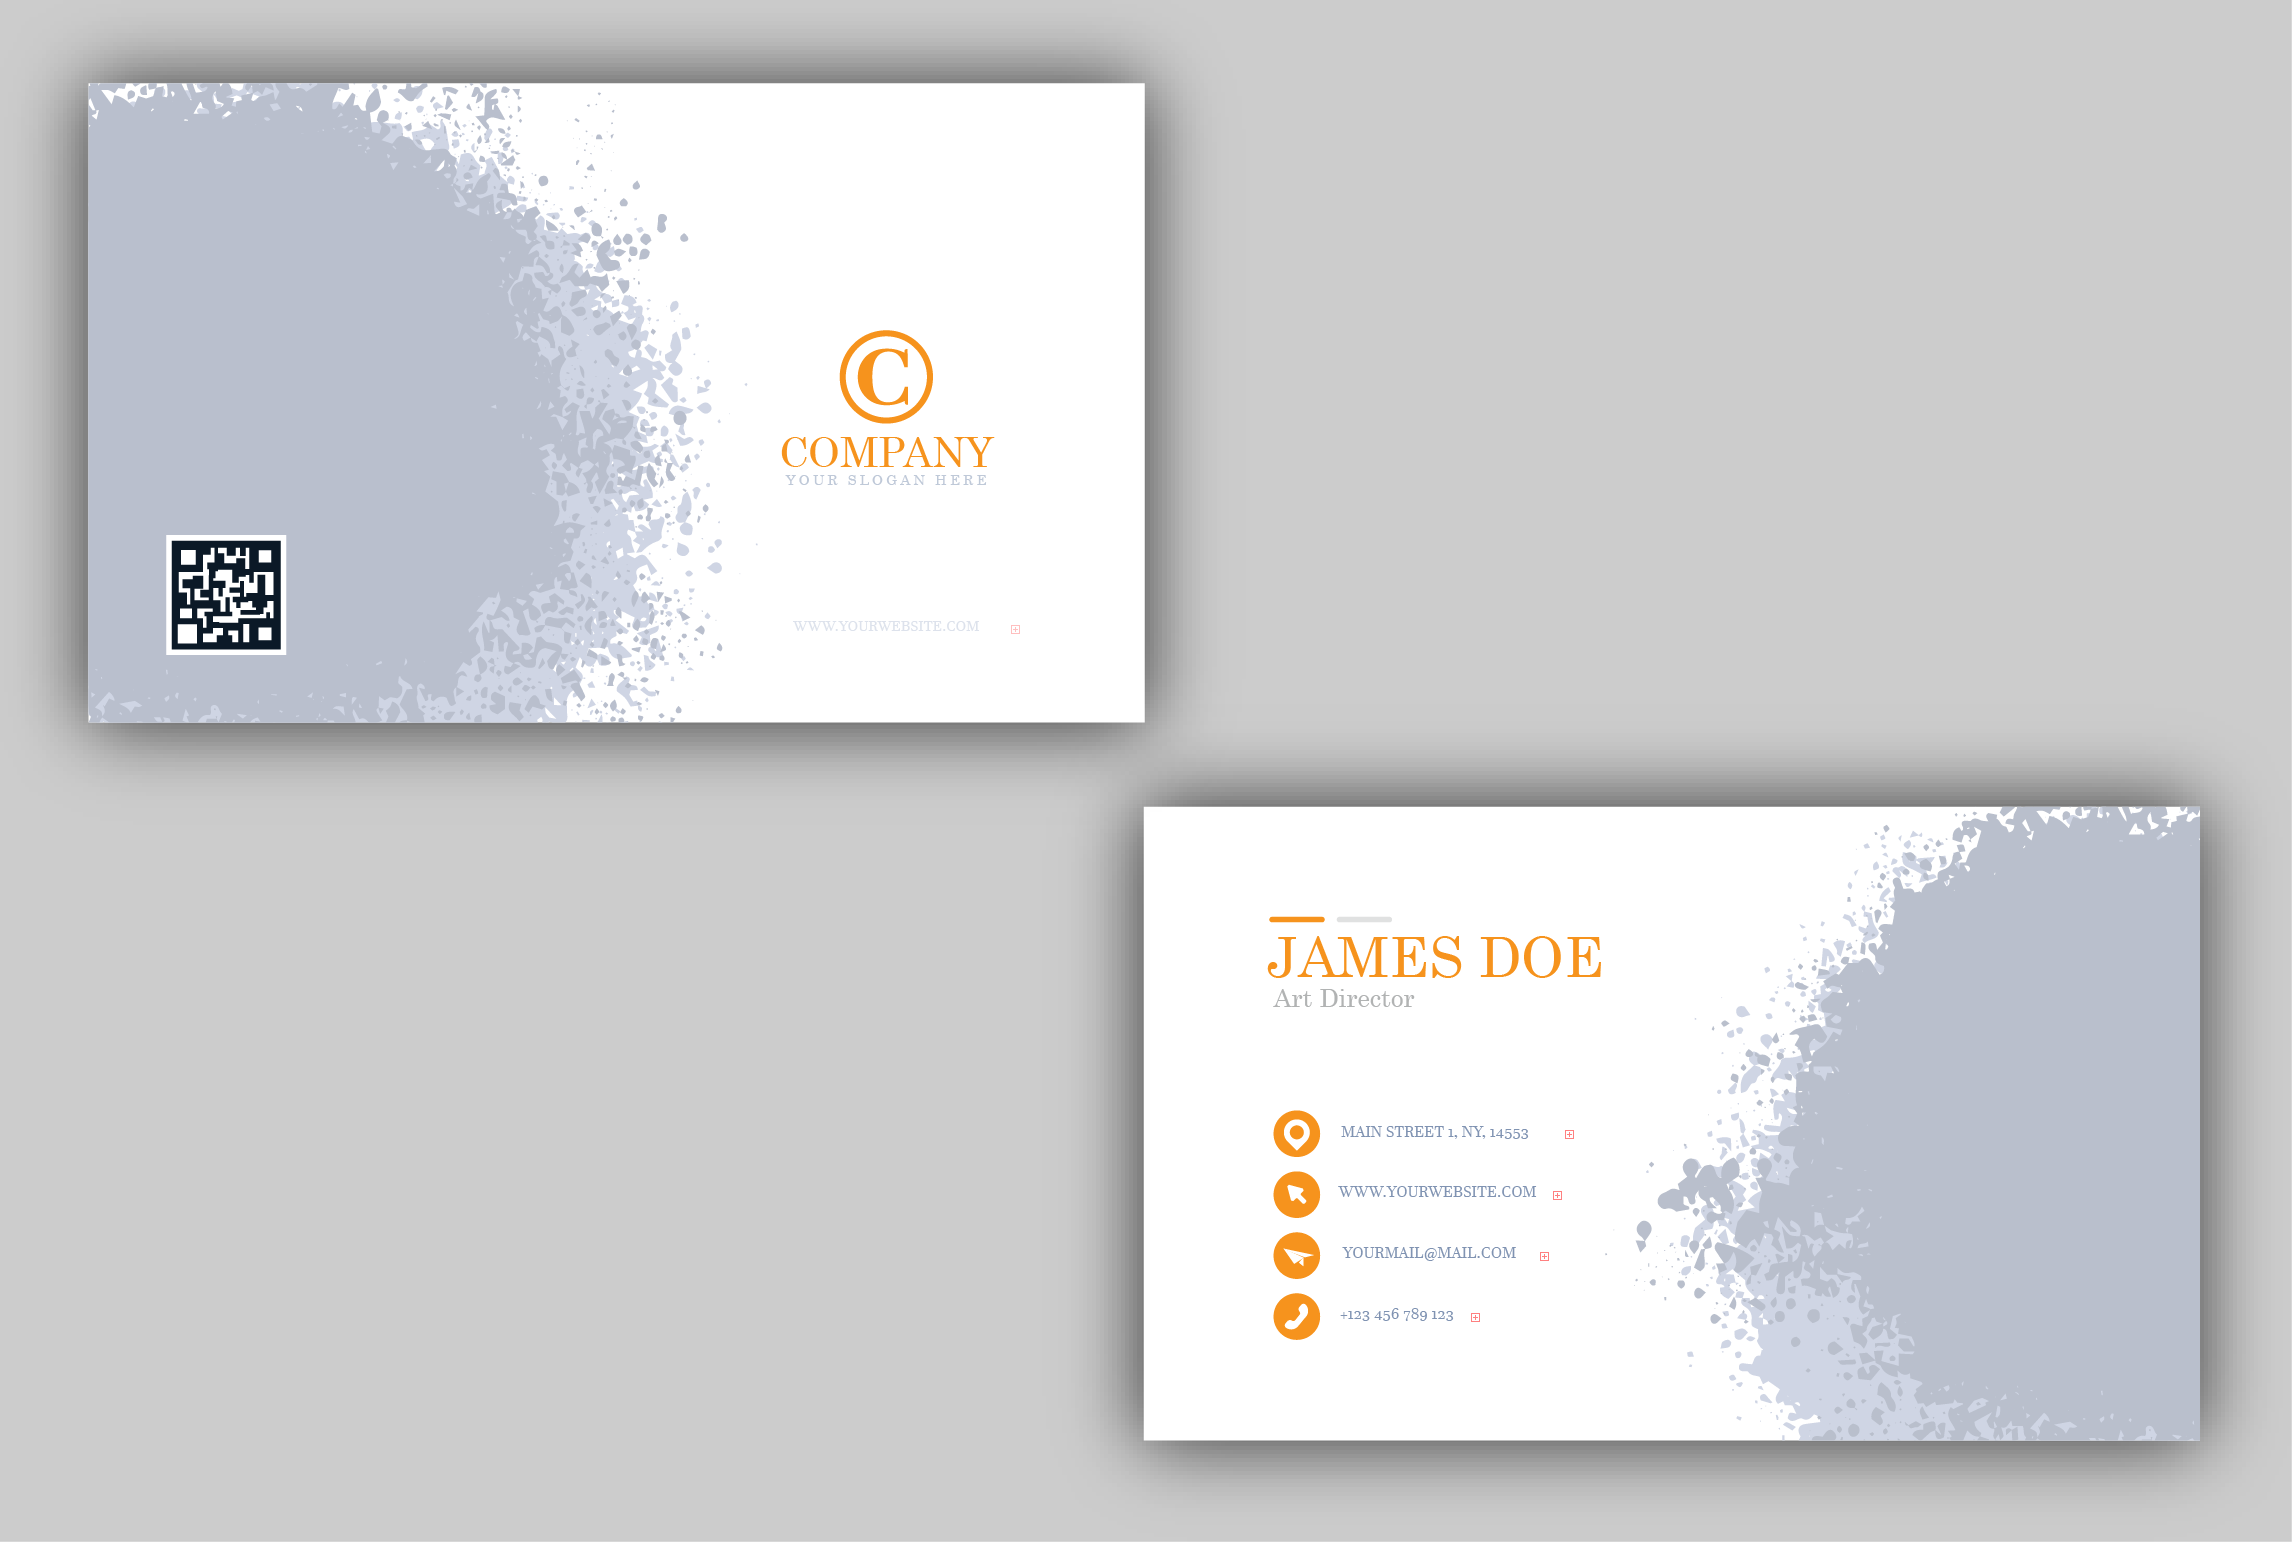 I will design stunning business cards creatively